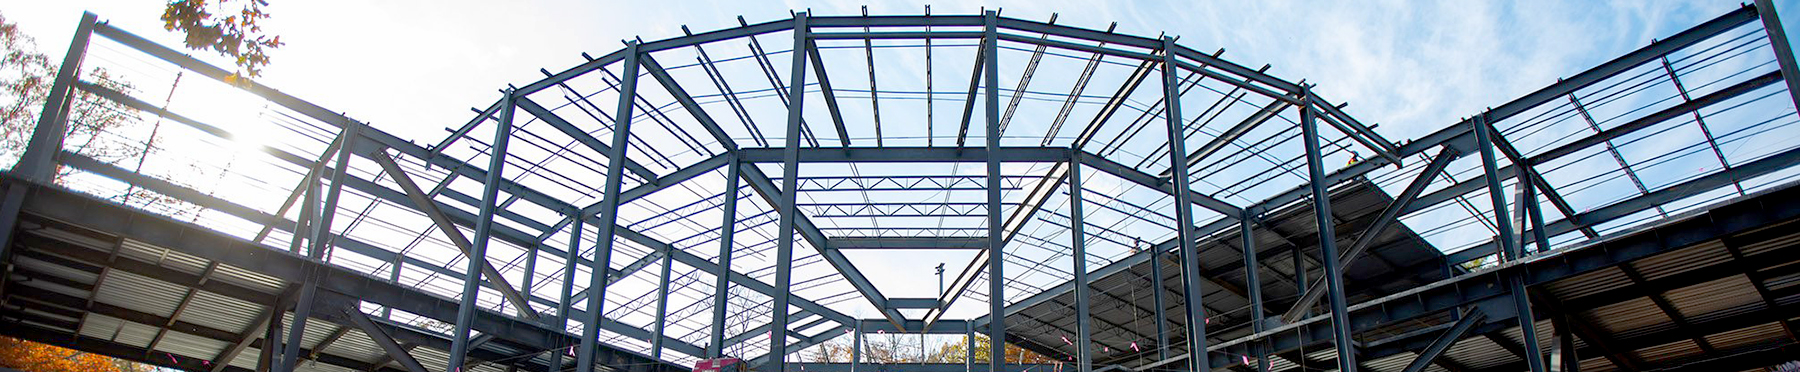 Bietz Center Construction